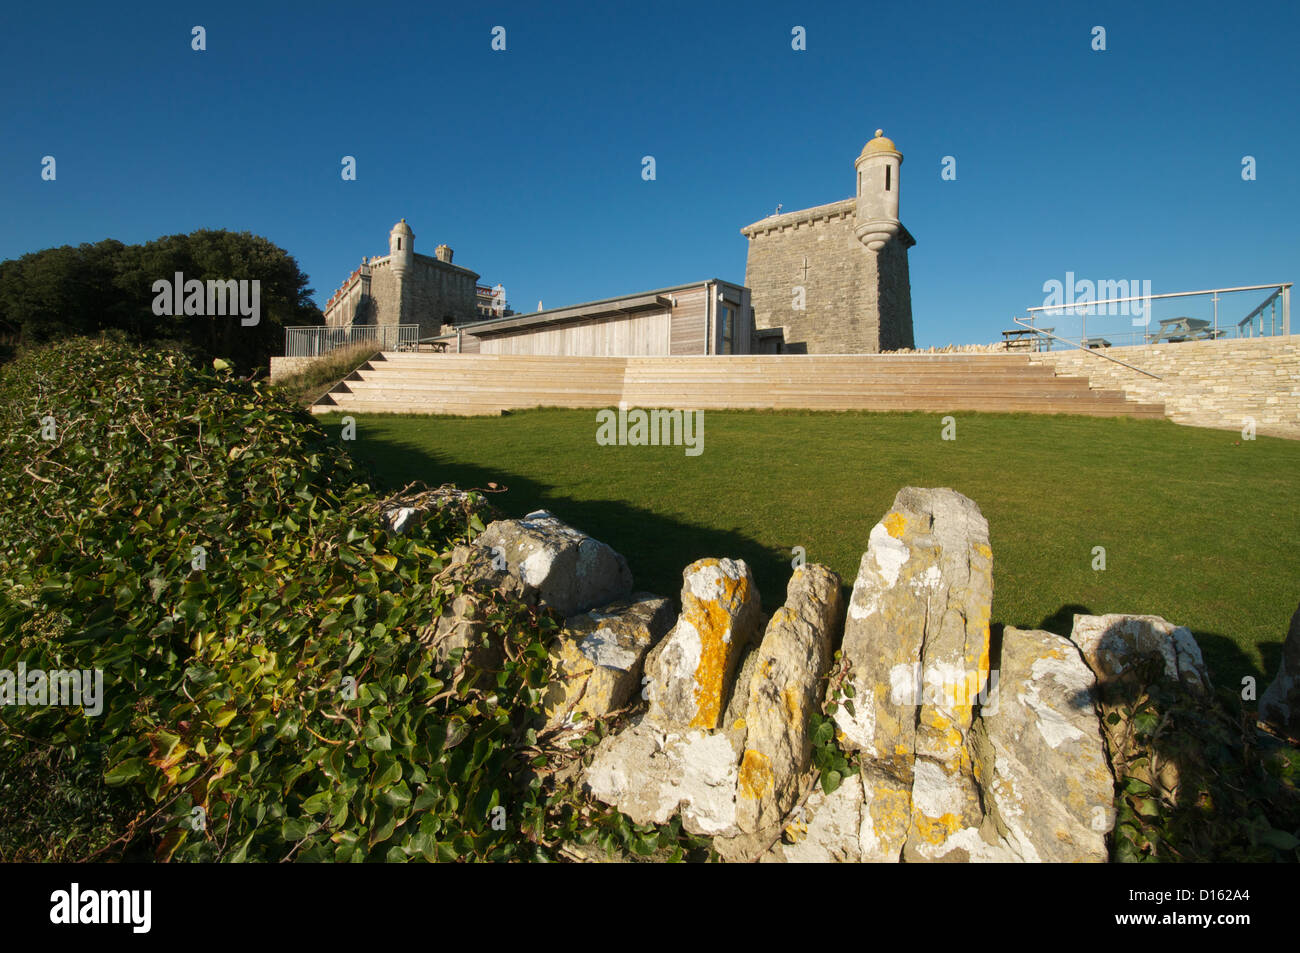 Durlston castle, Swanage, Dorset, UK, photographed on the day of their official BBC1 TV award ceremony on Saturday - Stock Image